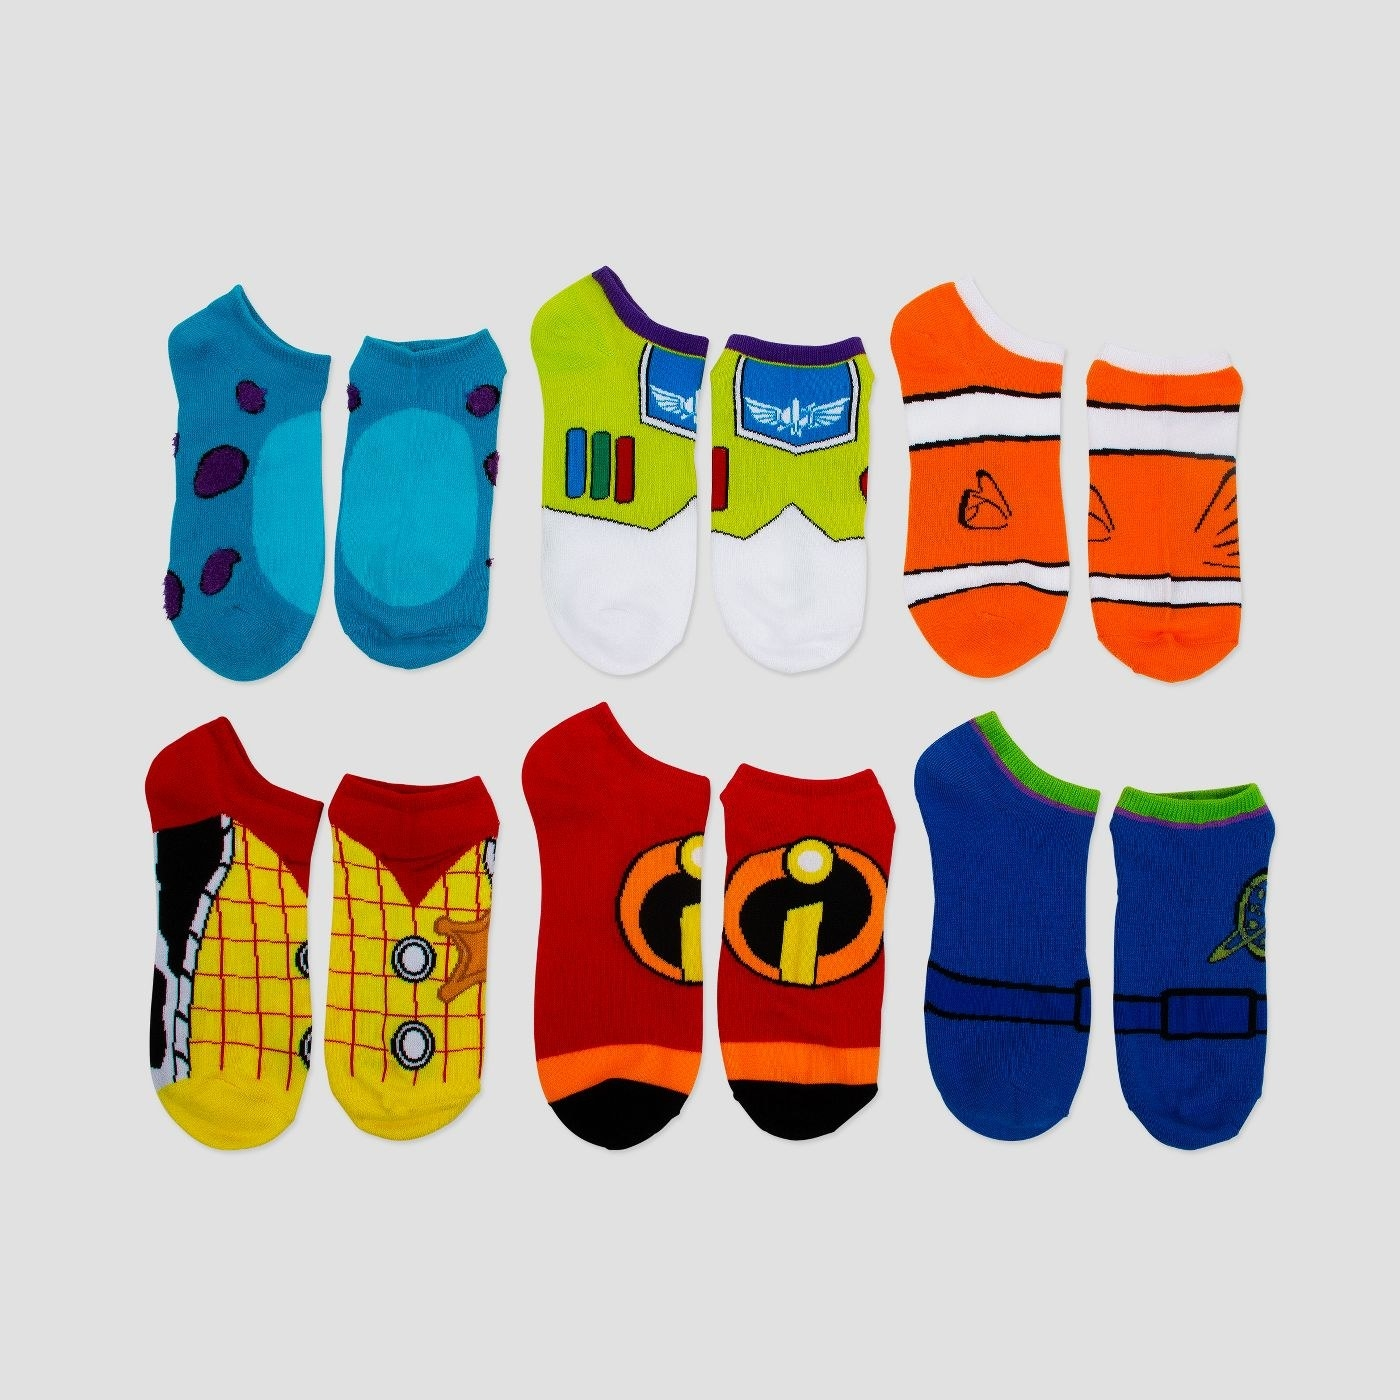 Disney socks in all colors of the rainbow